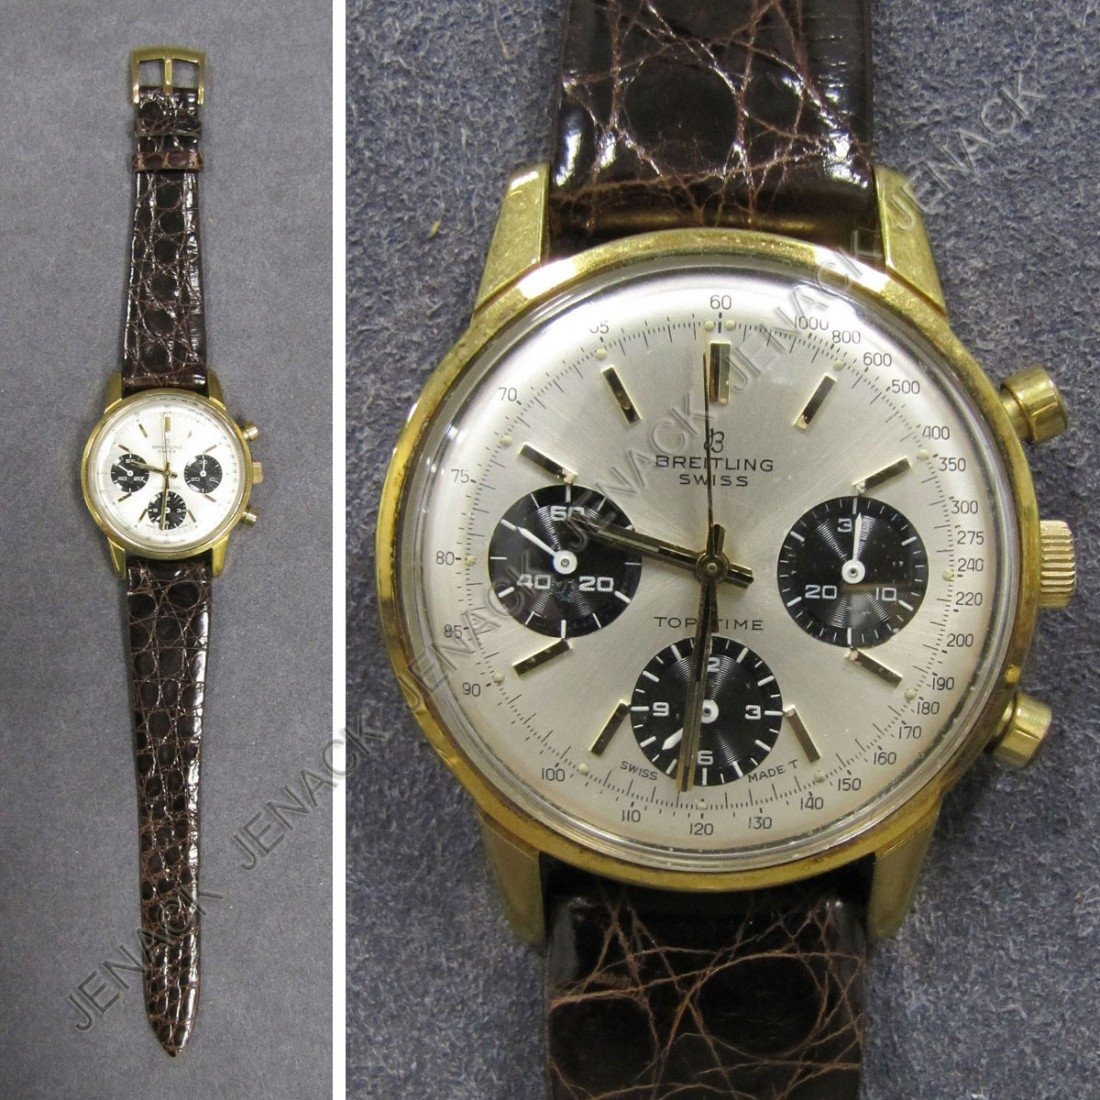 """21: BREITLING """"TOP TIME"""" CHRONOGRAPH WRISTWATCH"""